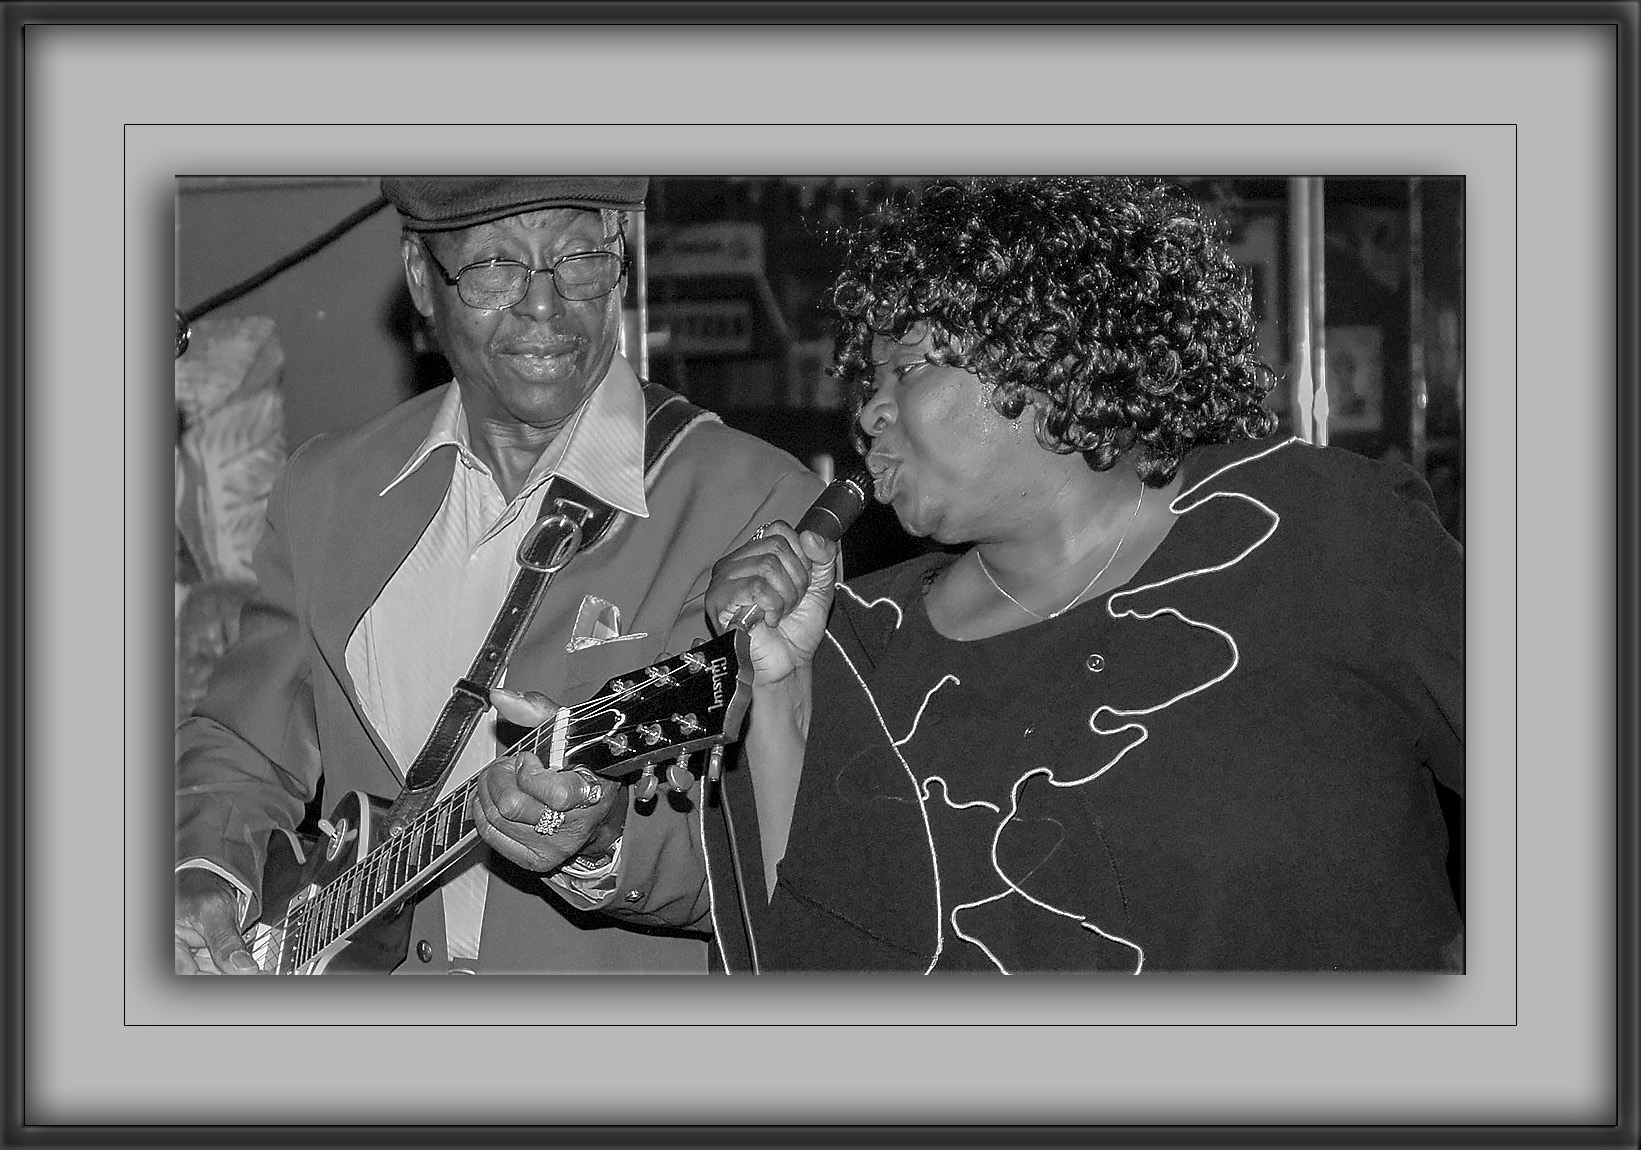 Texas Johnny Brown & Diunna-B&W-72